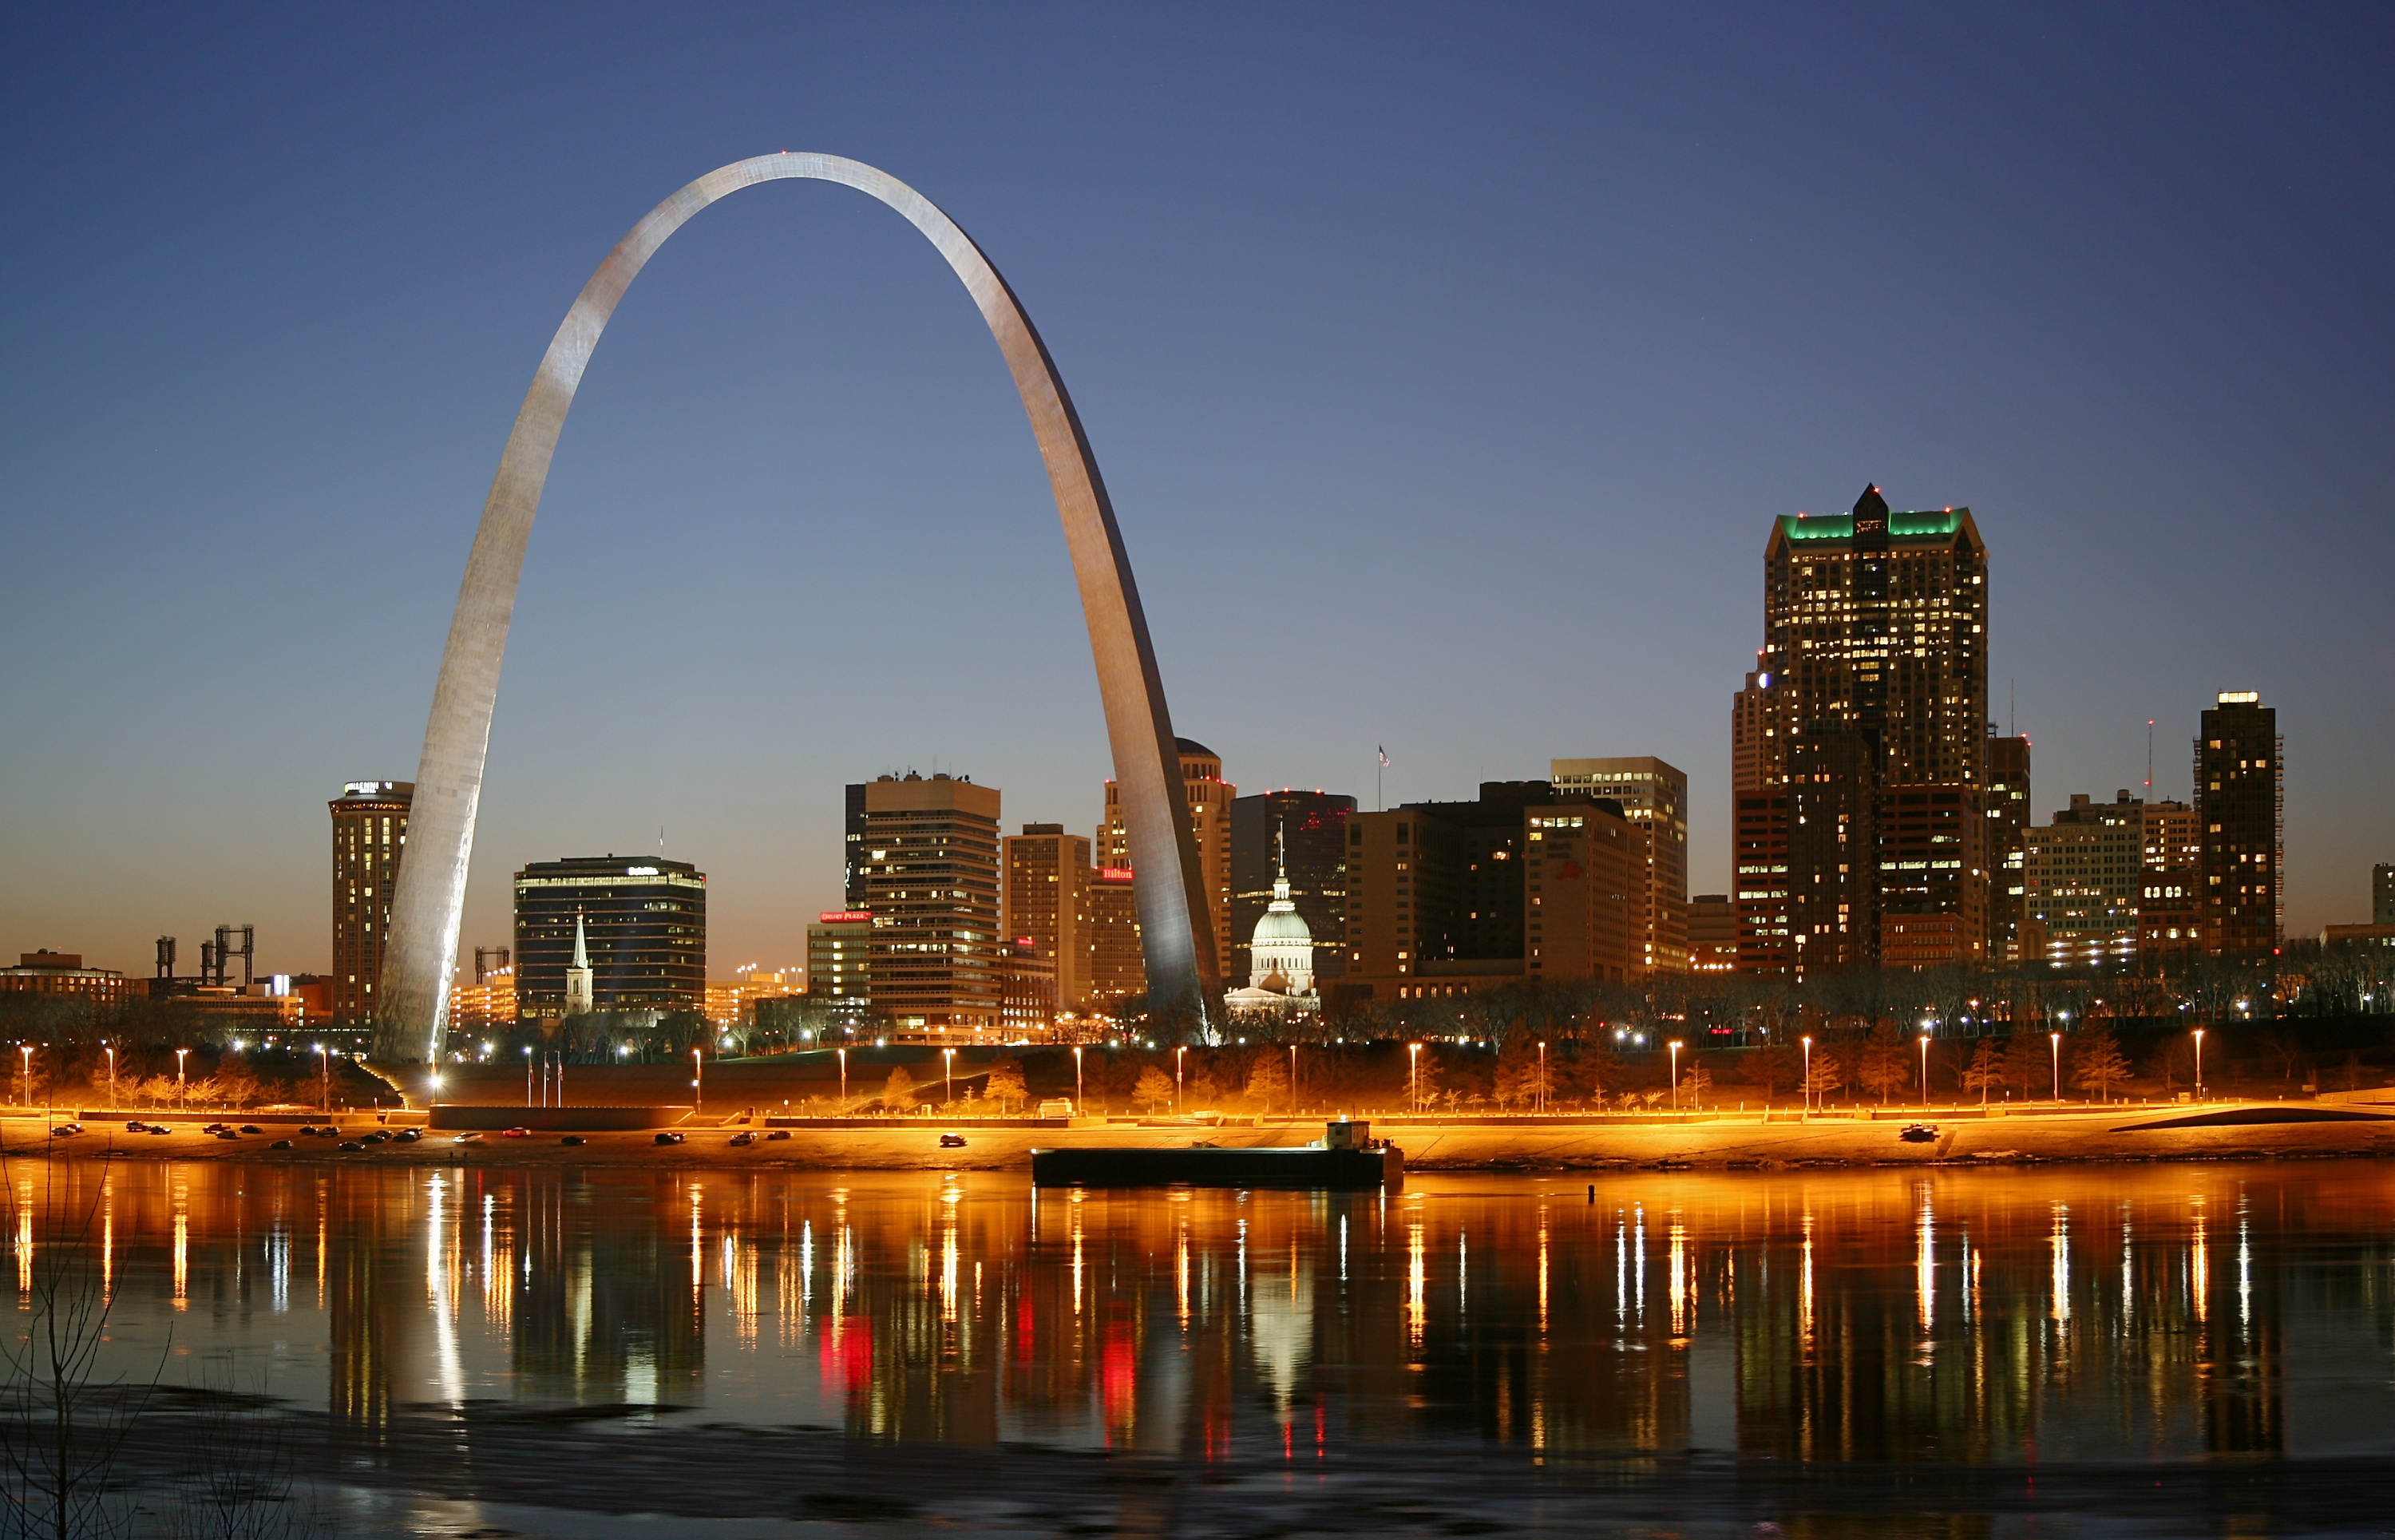 Saint Louis (Missouri)